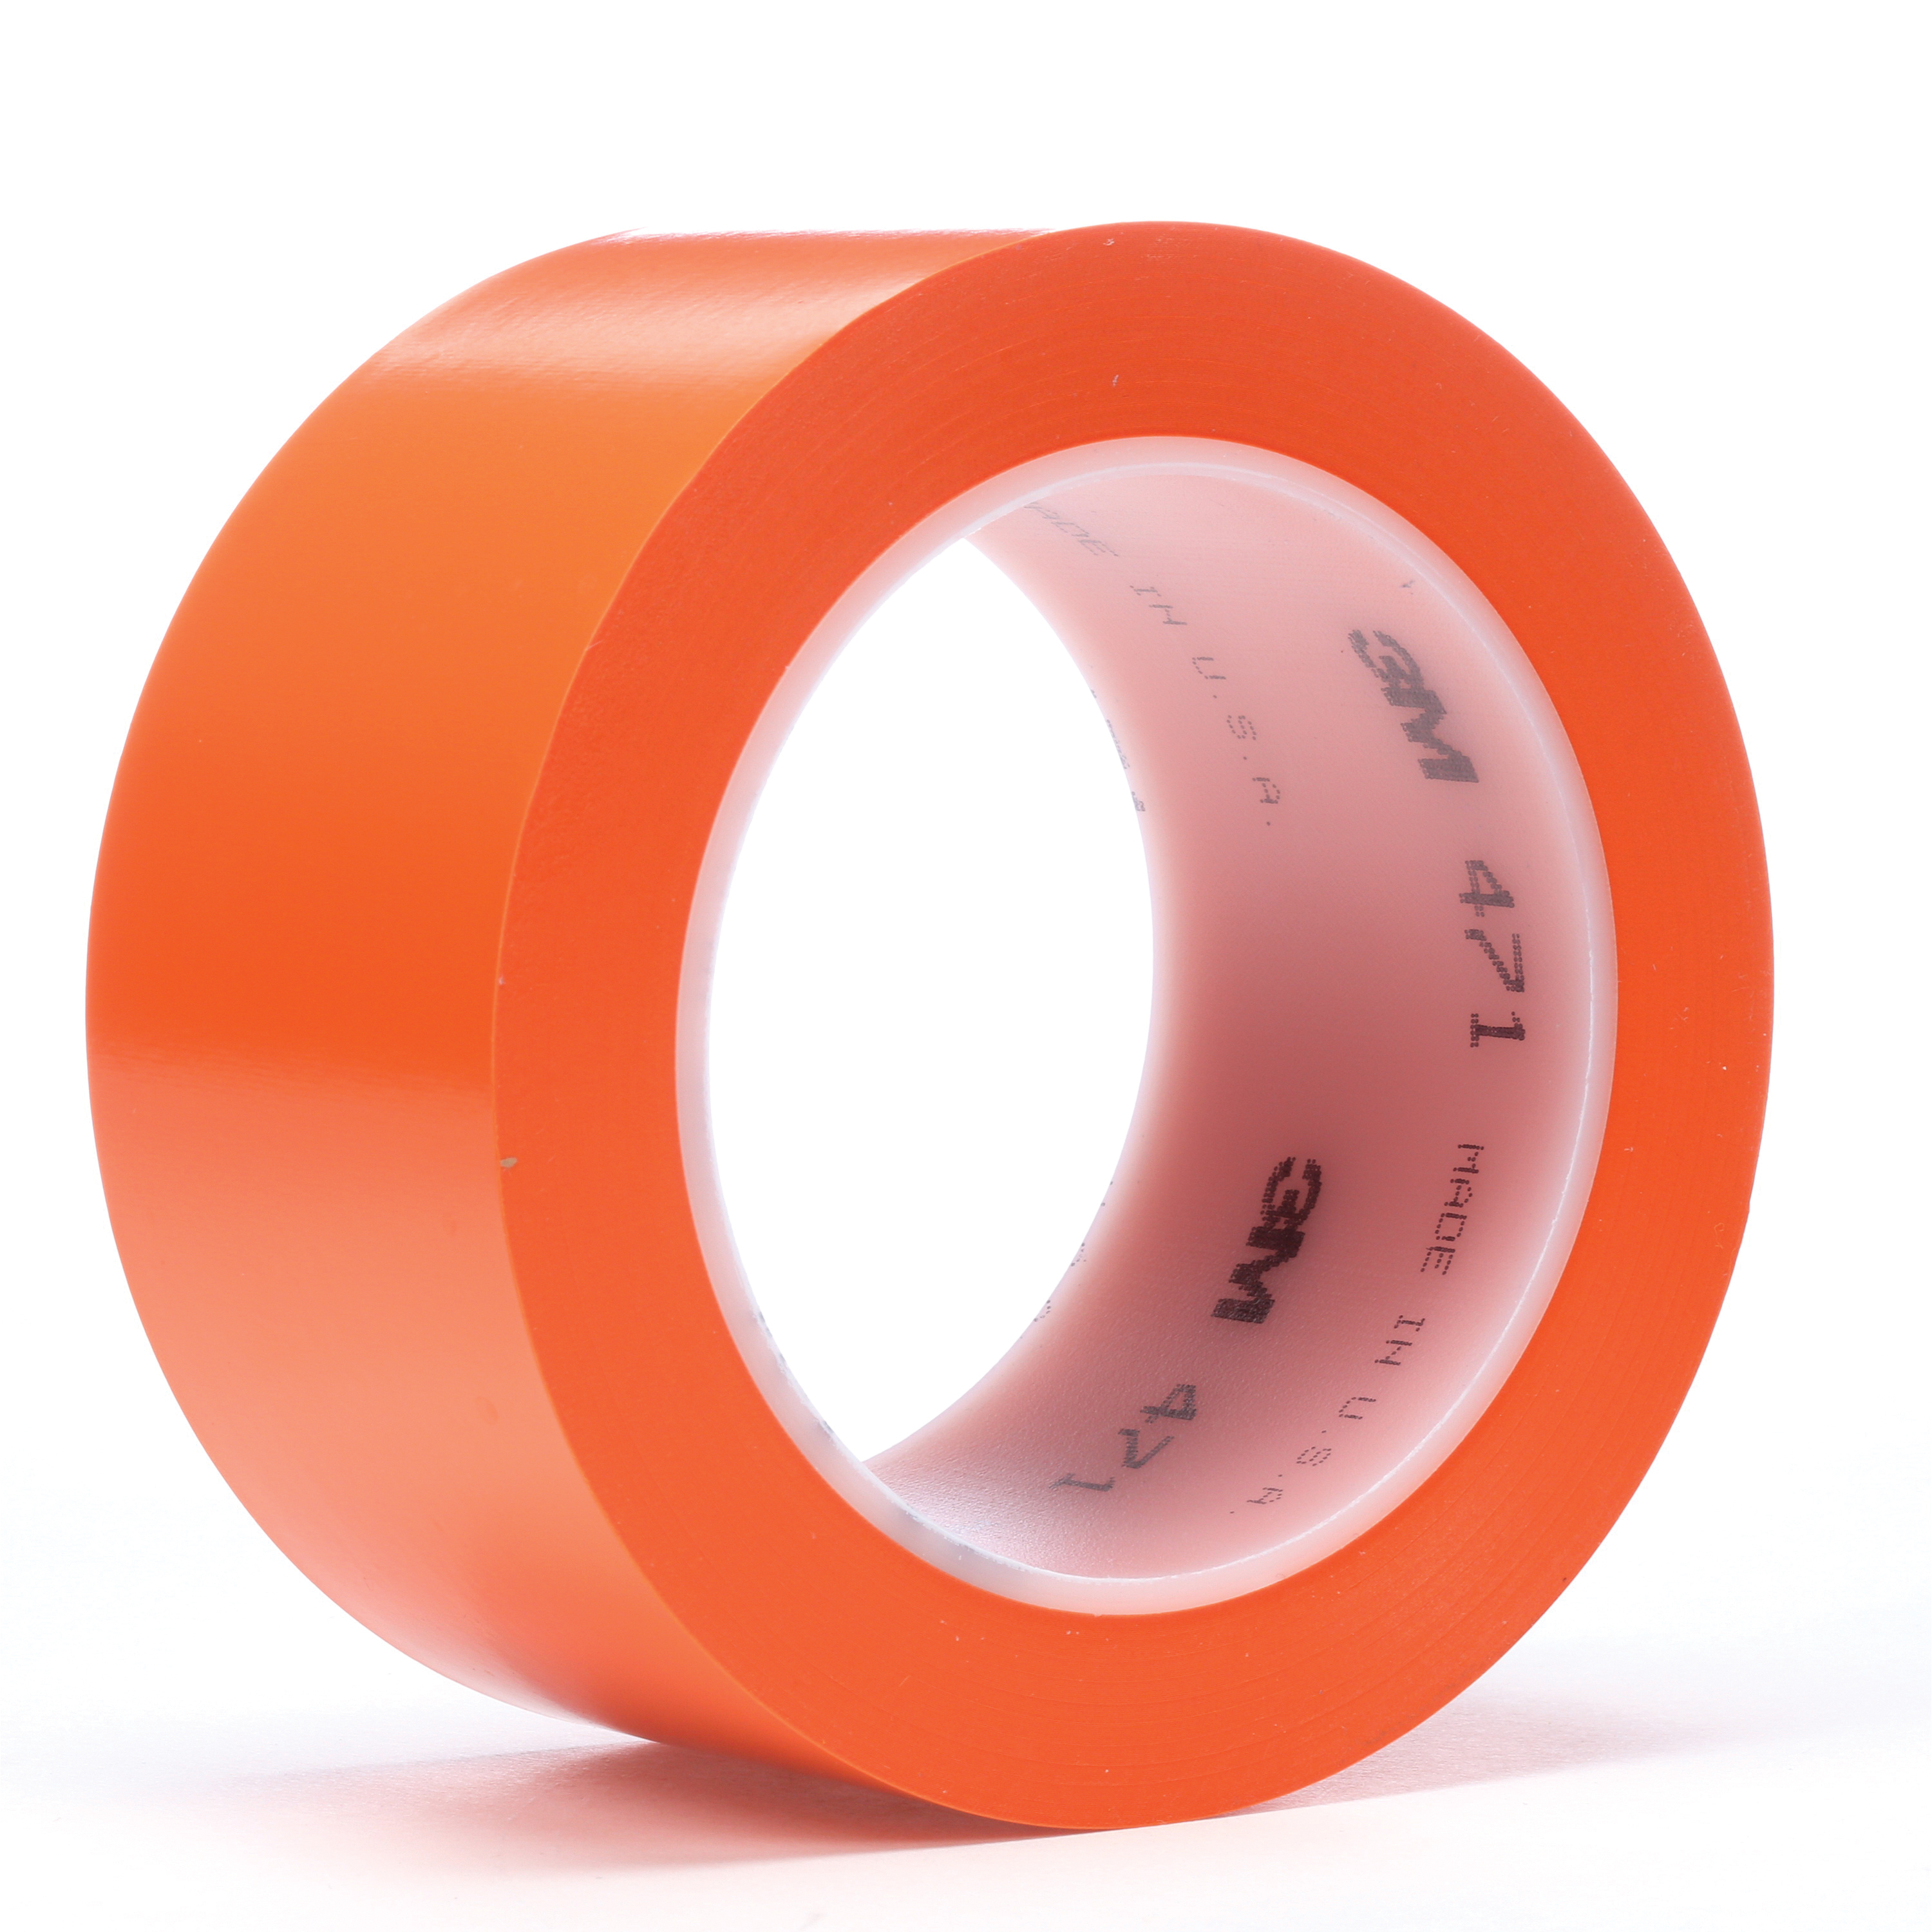 3M™ 021200-03135 High Performance Vinyl Tape, 36 yd L x 3/4 in W, 5.2 mil THK, Rubber Adhesive, Vinyl Backing, White